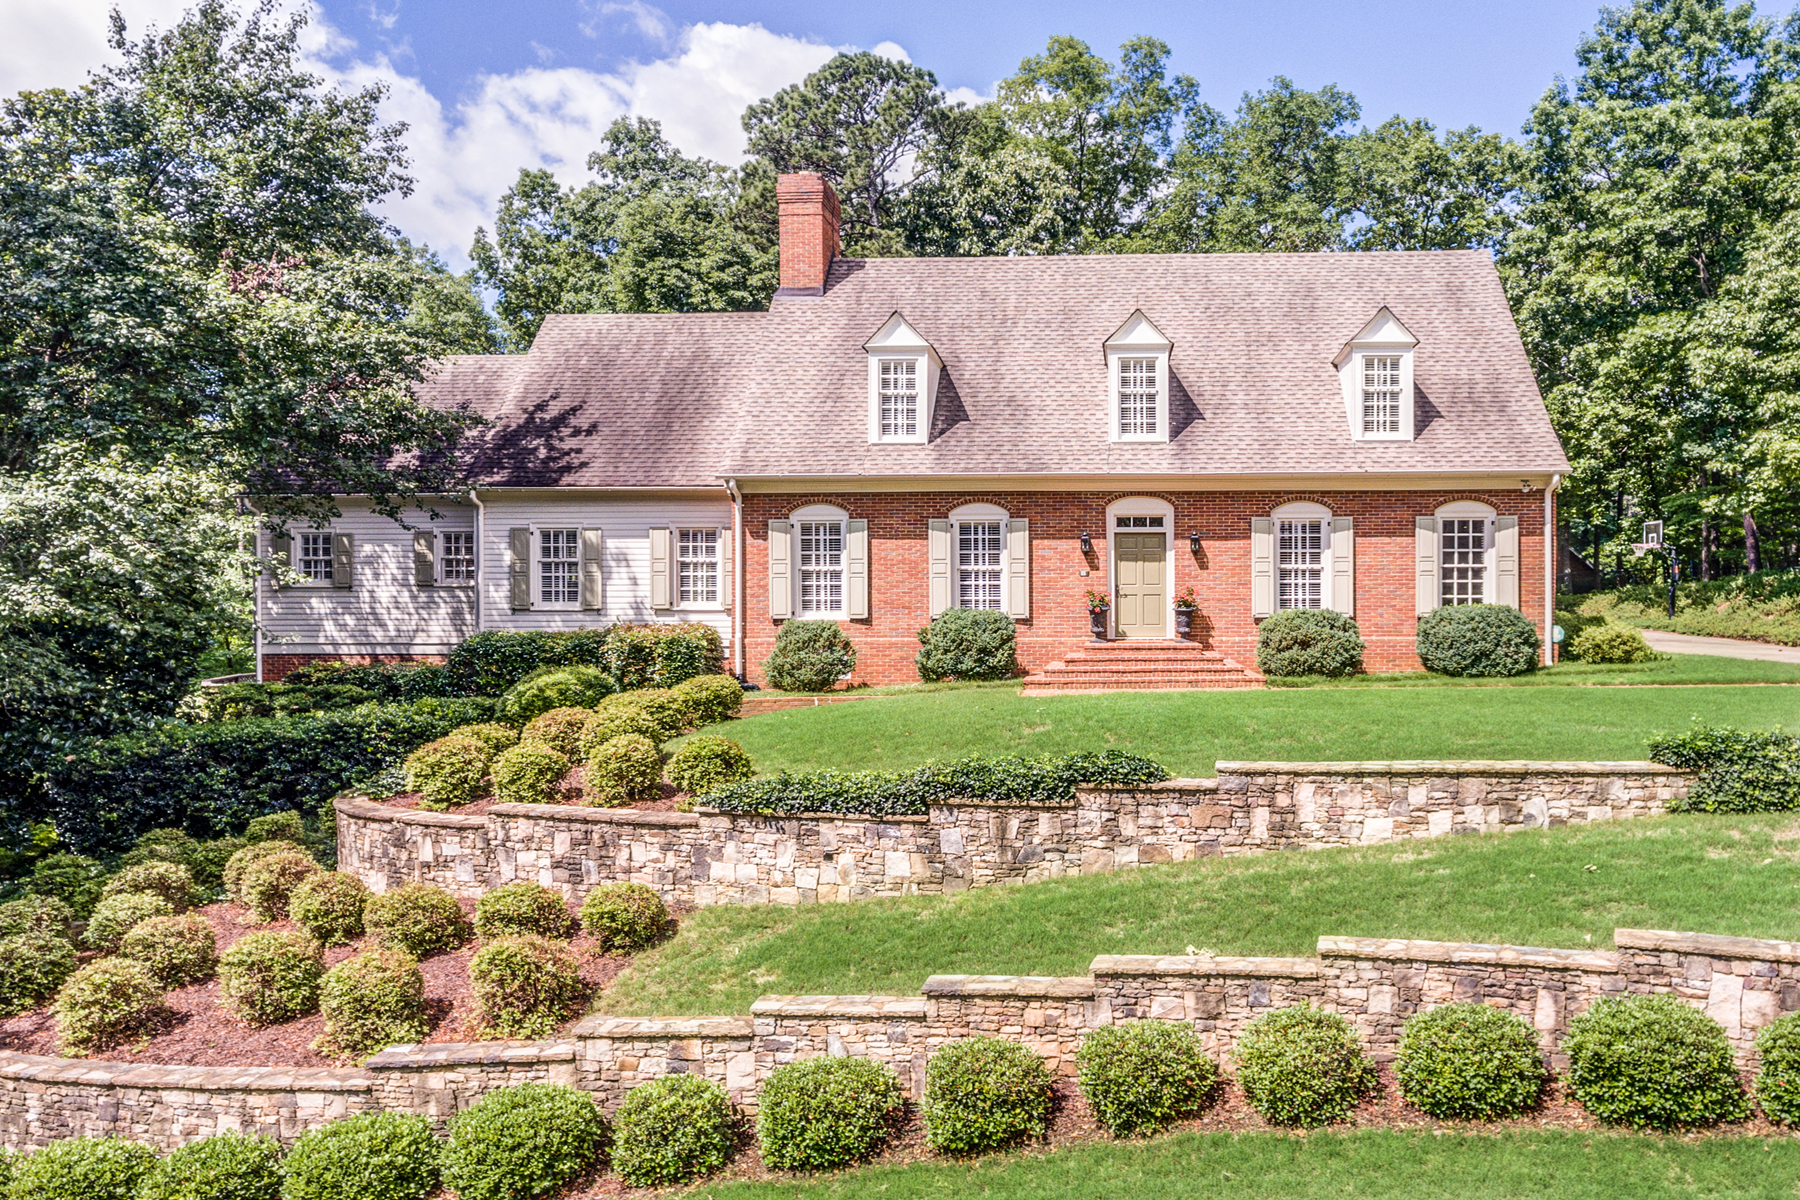 Moradia para Venda às Beautifully Sited, Well Built And Maintained Home On Over An Acre 5300 Woodridge Forest Trail Sandy Springs, Geórgia, 30327 Estados Unidos